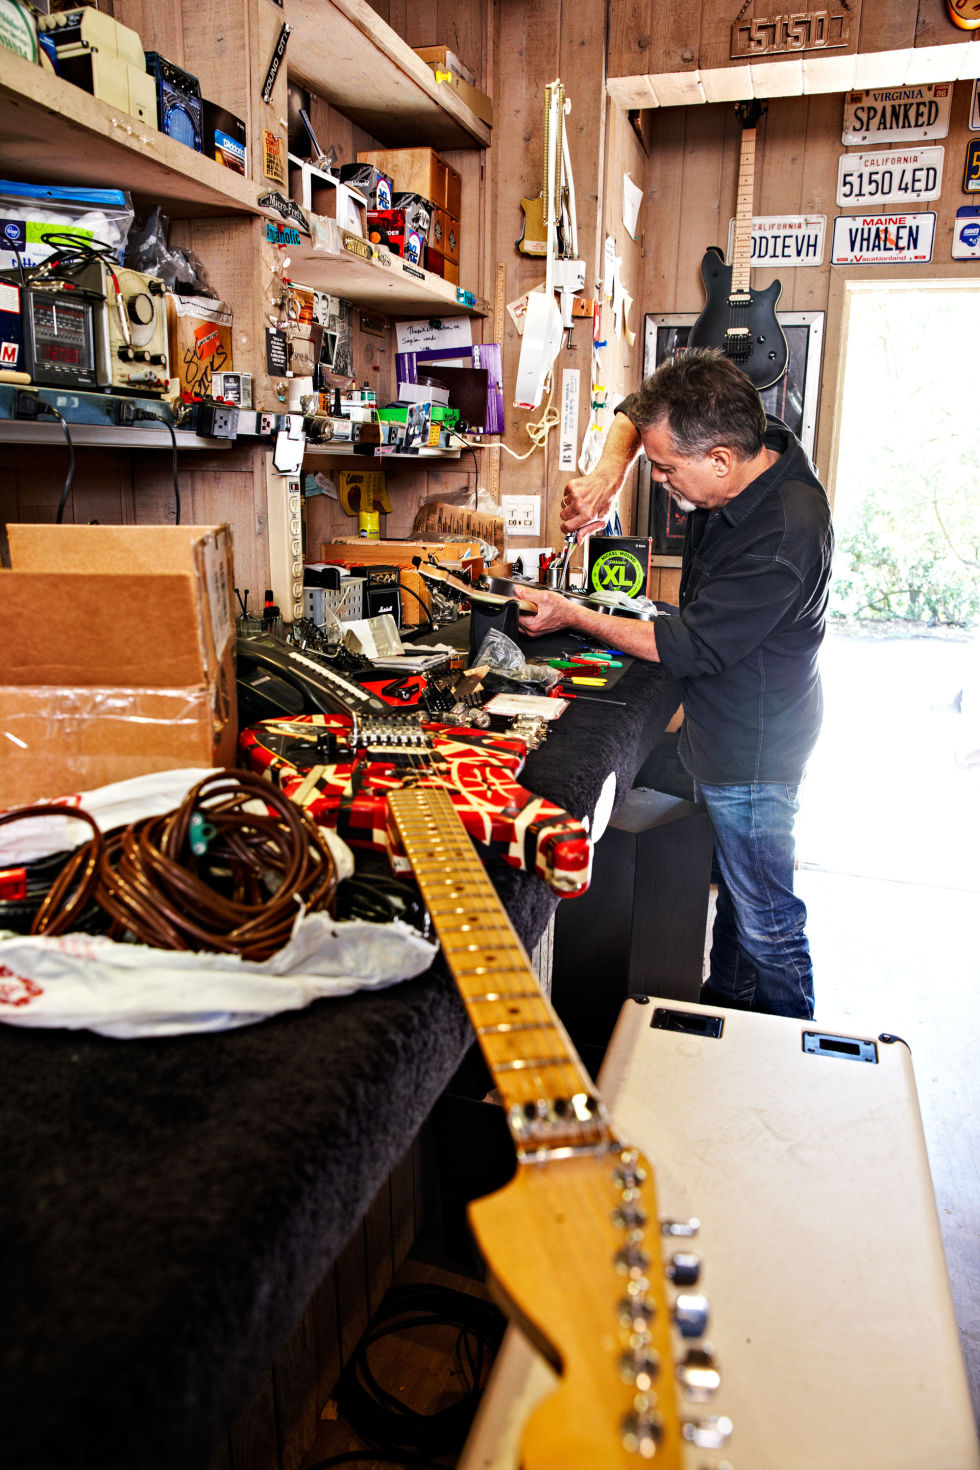 evh talks about his old approach to gear metropoulos forum image